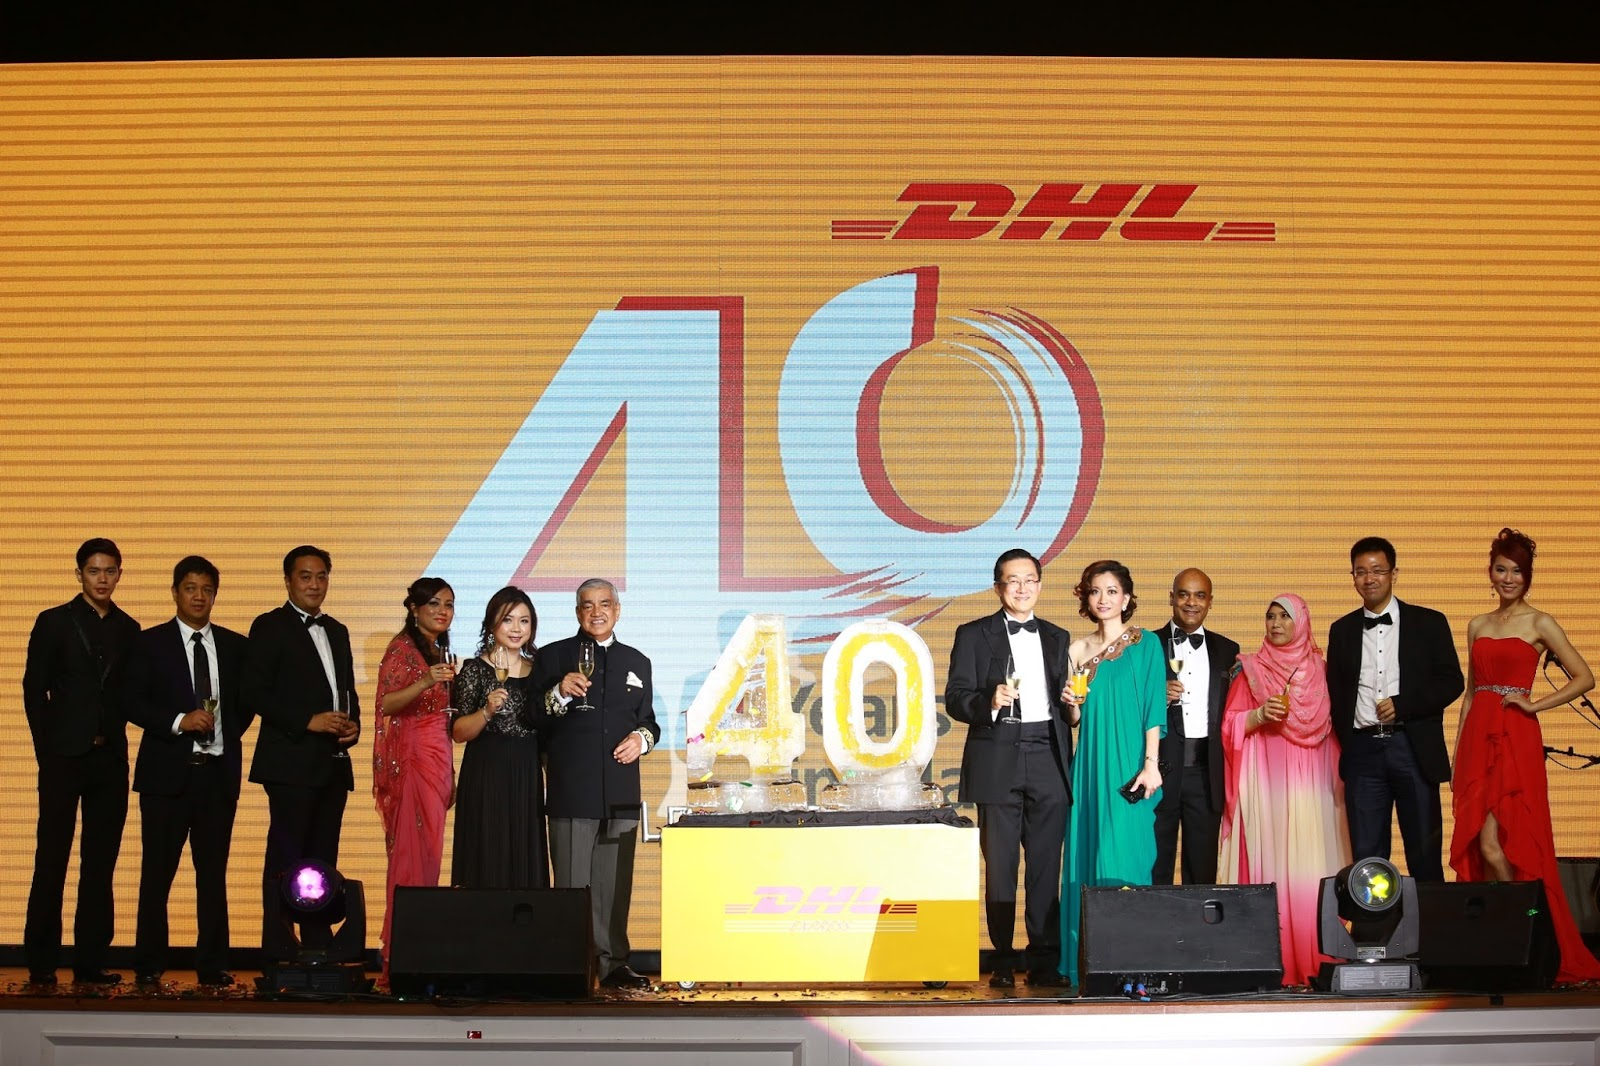 dhl express in malaysia Kuala lumpur: dhl express, the world's leading international express services provider, will invest rm11 million and start construction of its southern malaysia gateway in johor this year.